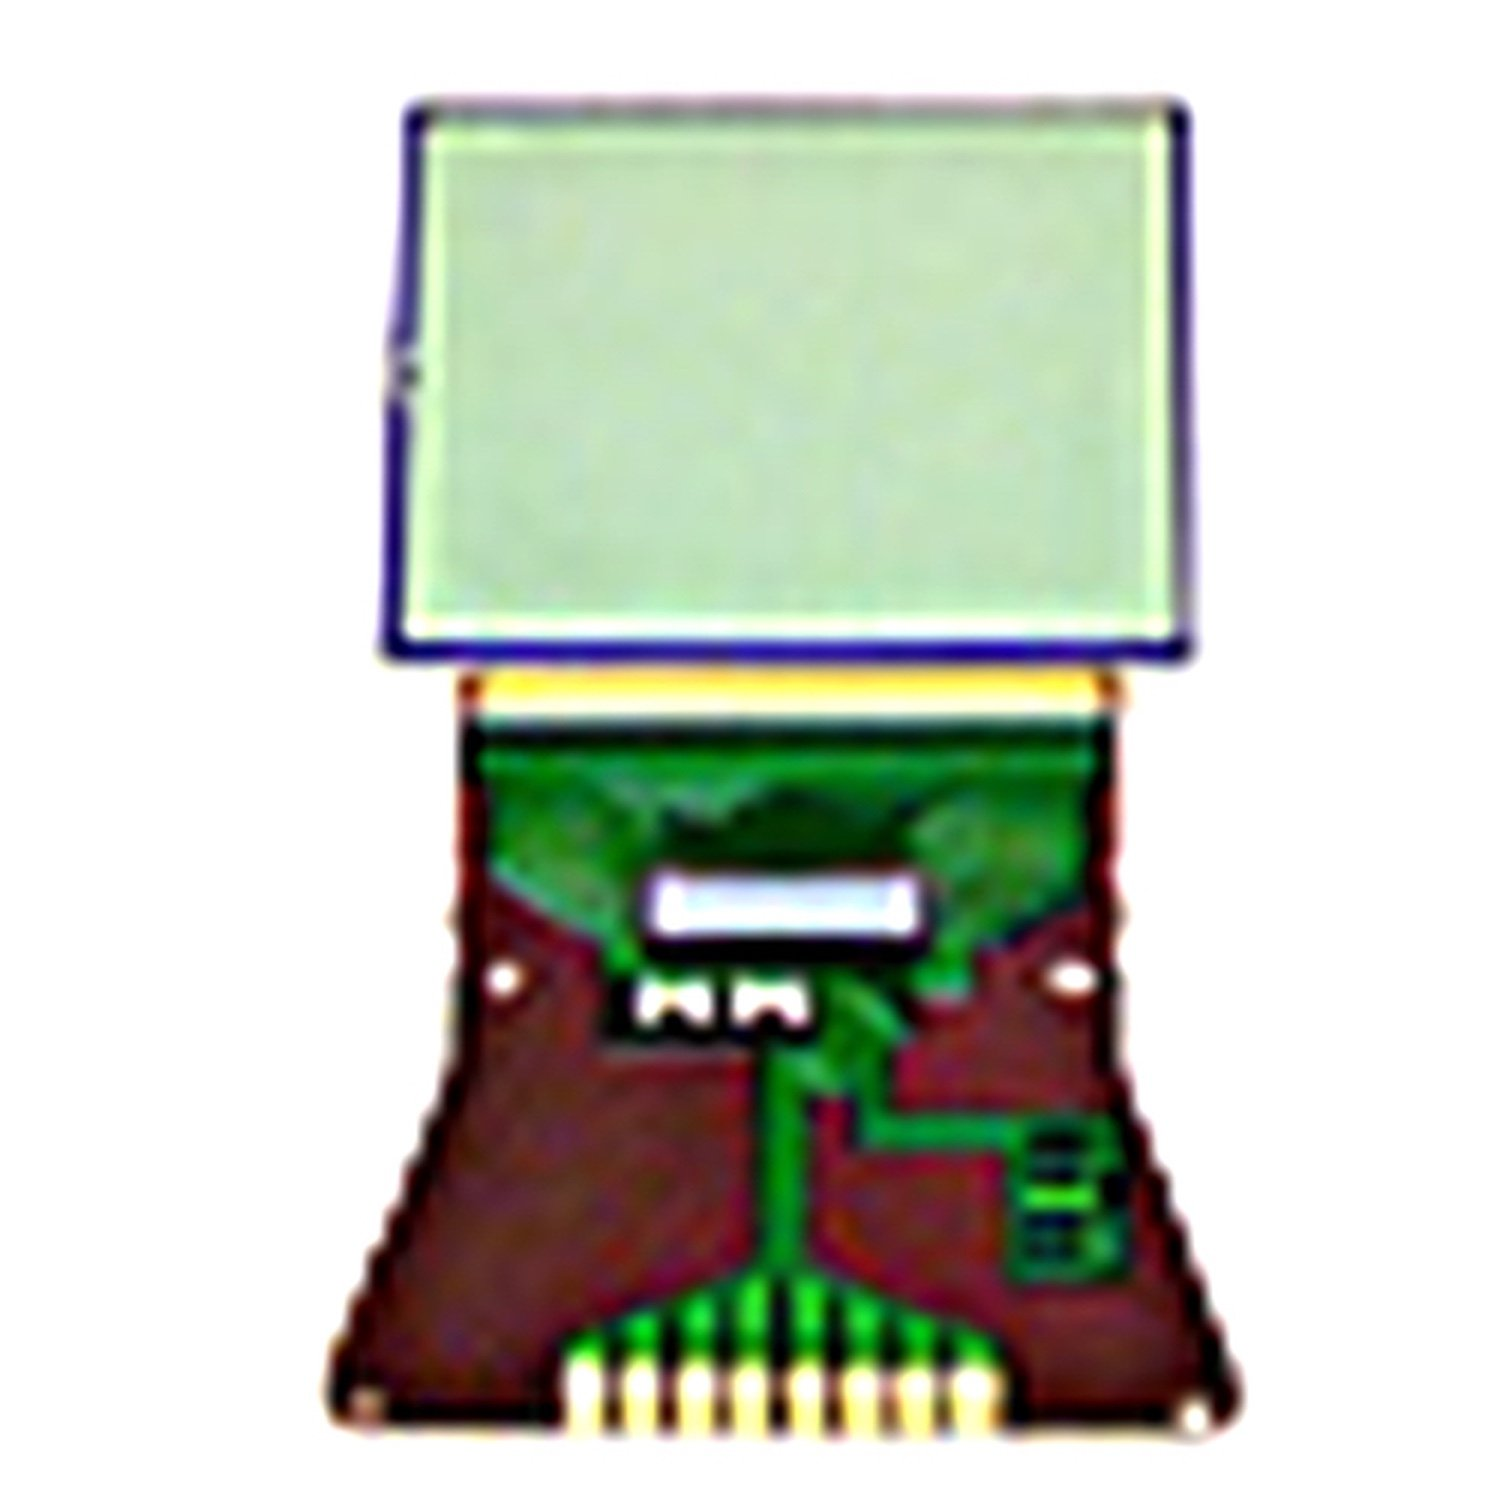 Фото - LCD Display Nokia 8310 with flat cord connection lcd monitor samsung a100 with cord flex